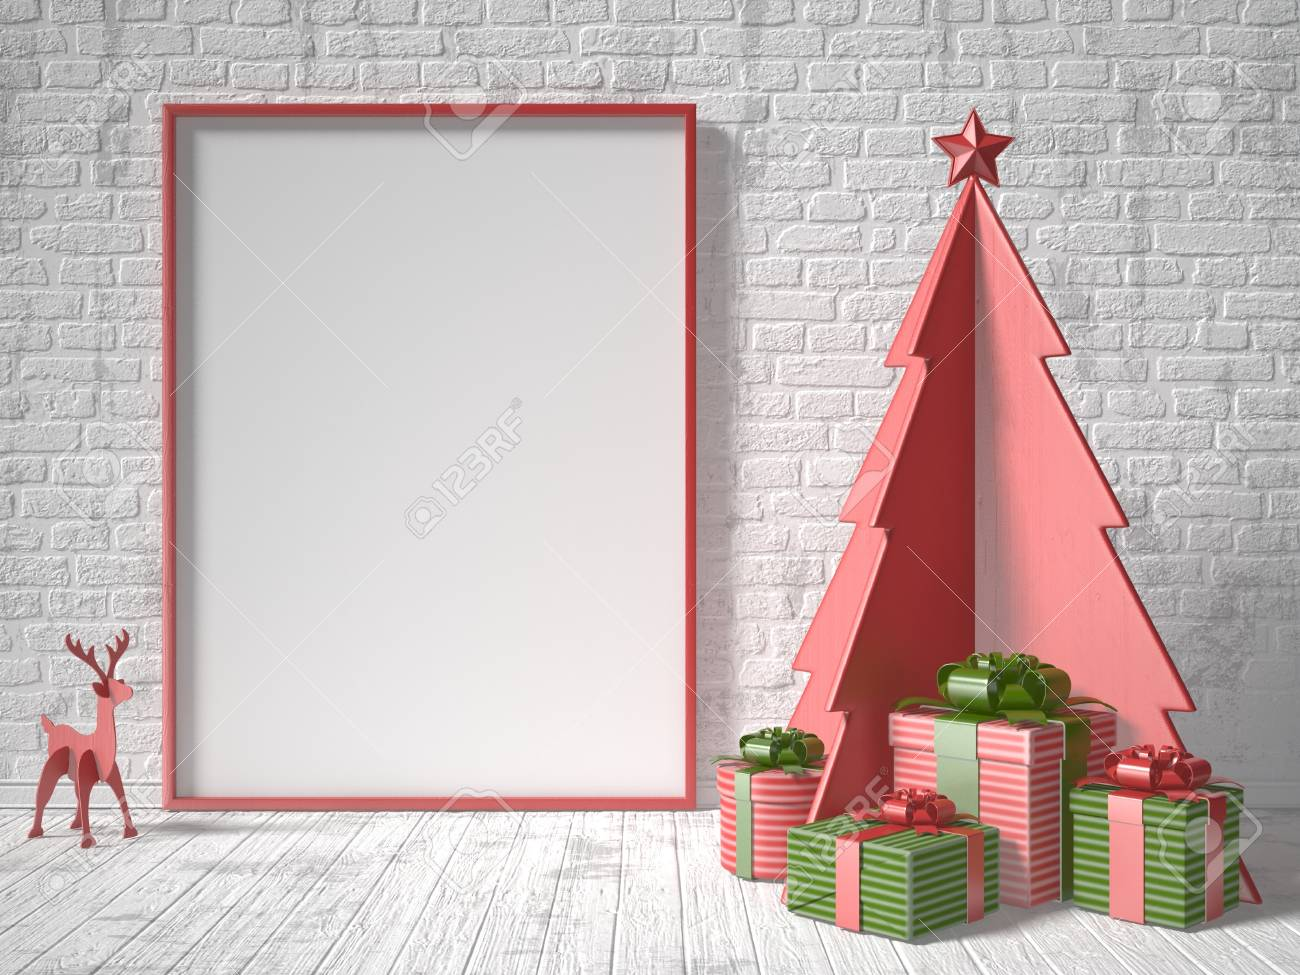 illustration mock up blank picture frame christmas tree decoration and gifts 3d rendering illustration